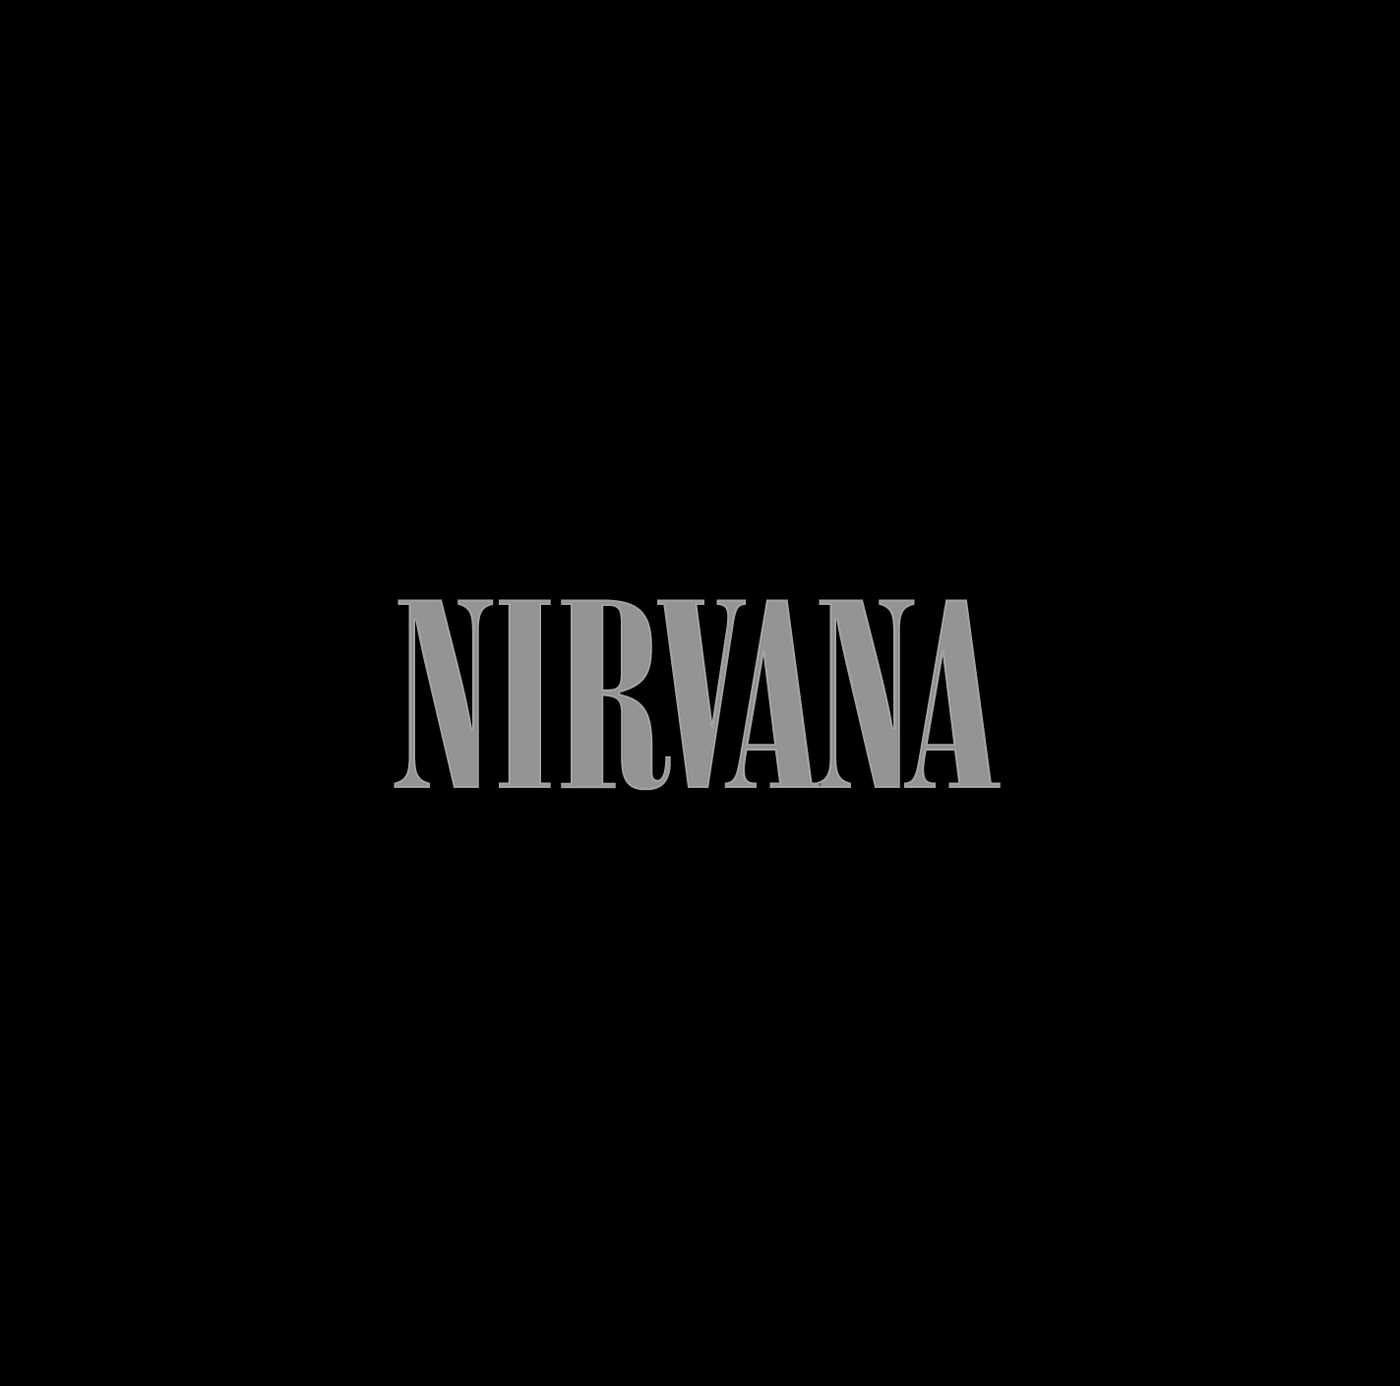 Nirvana - Gears For Ears